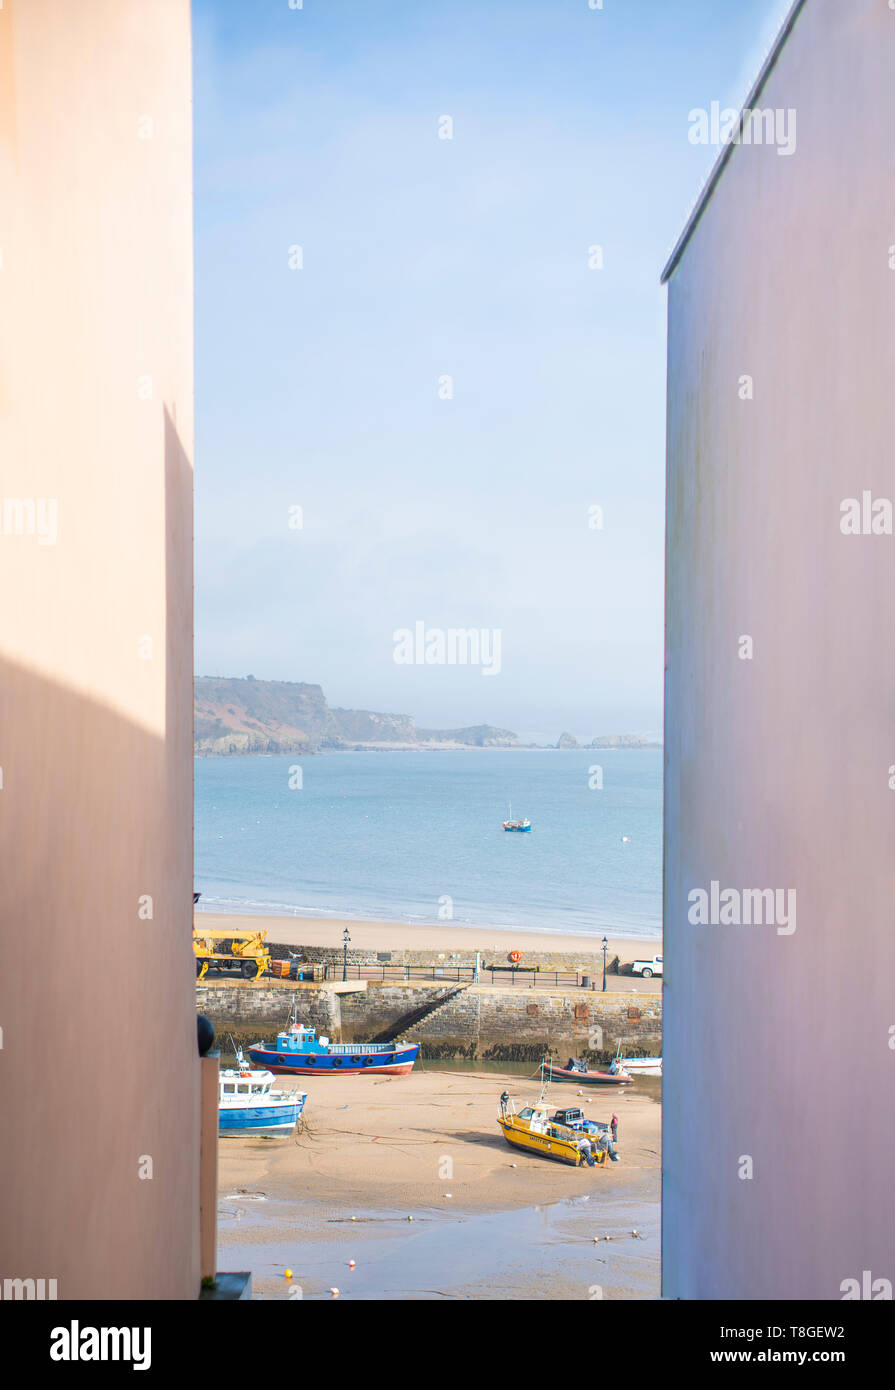 A view of the sea between two buildings in Tenby, South Wales, on a sunny day. - Stock Image